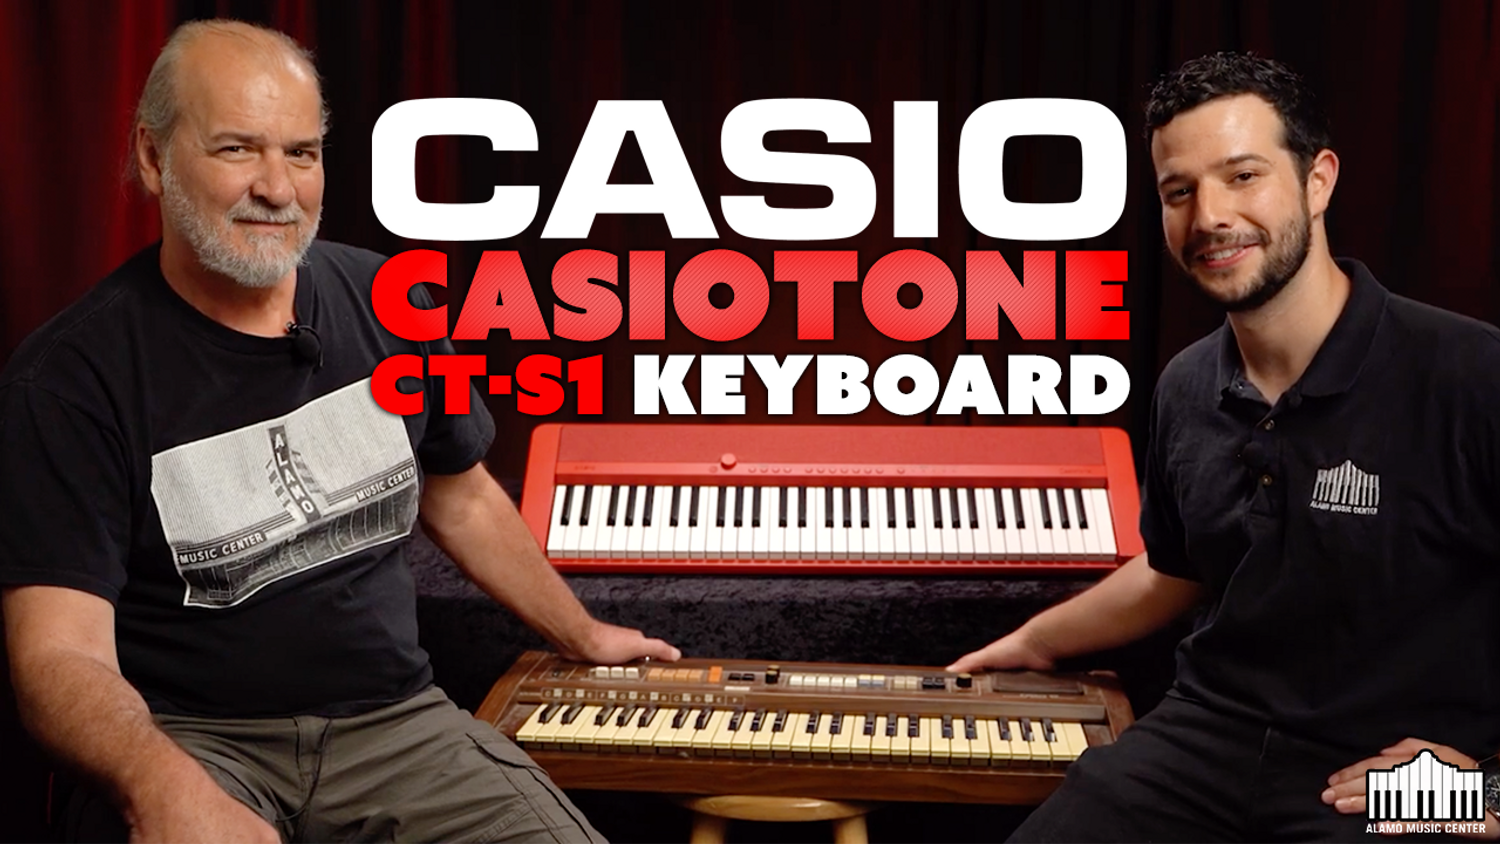 Casio Casiotone CT-S1 61-Key Portable Keyboard | Overview & DEMO